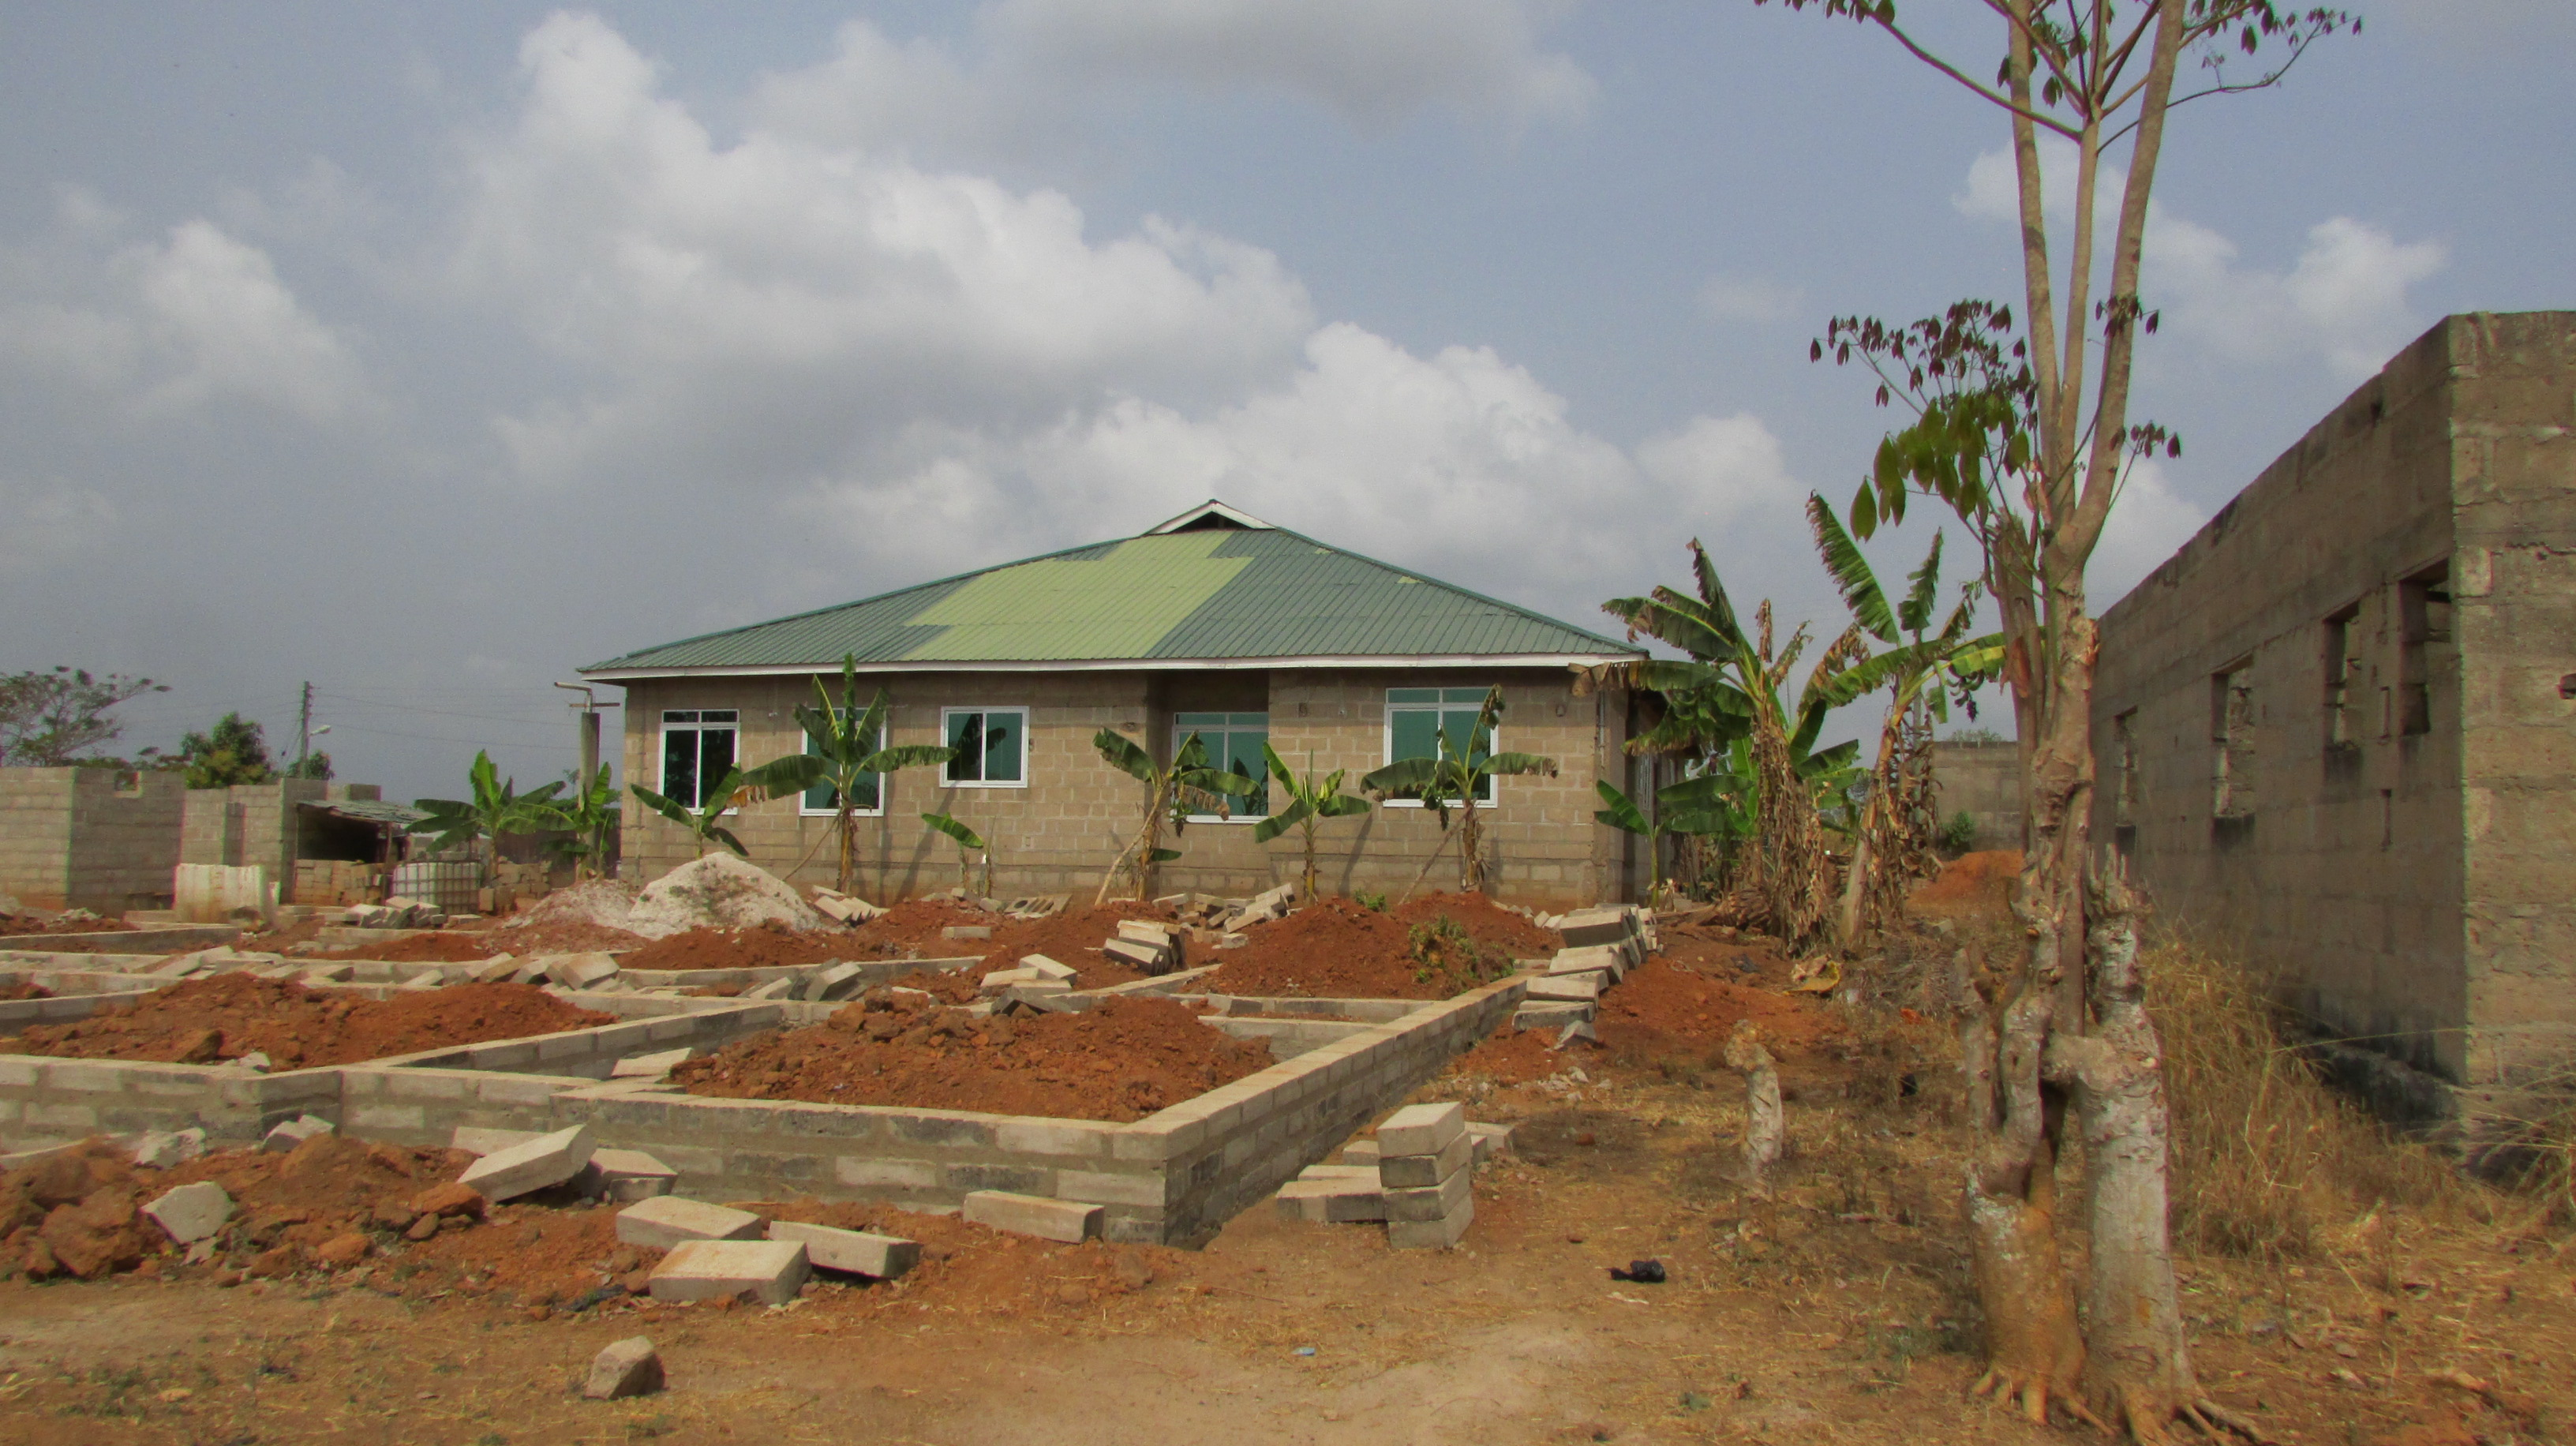 https://housingfinanceafrica.org/projects/case-studies/